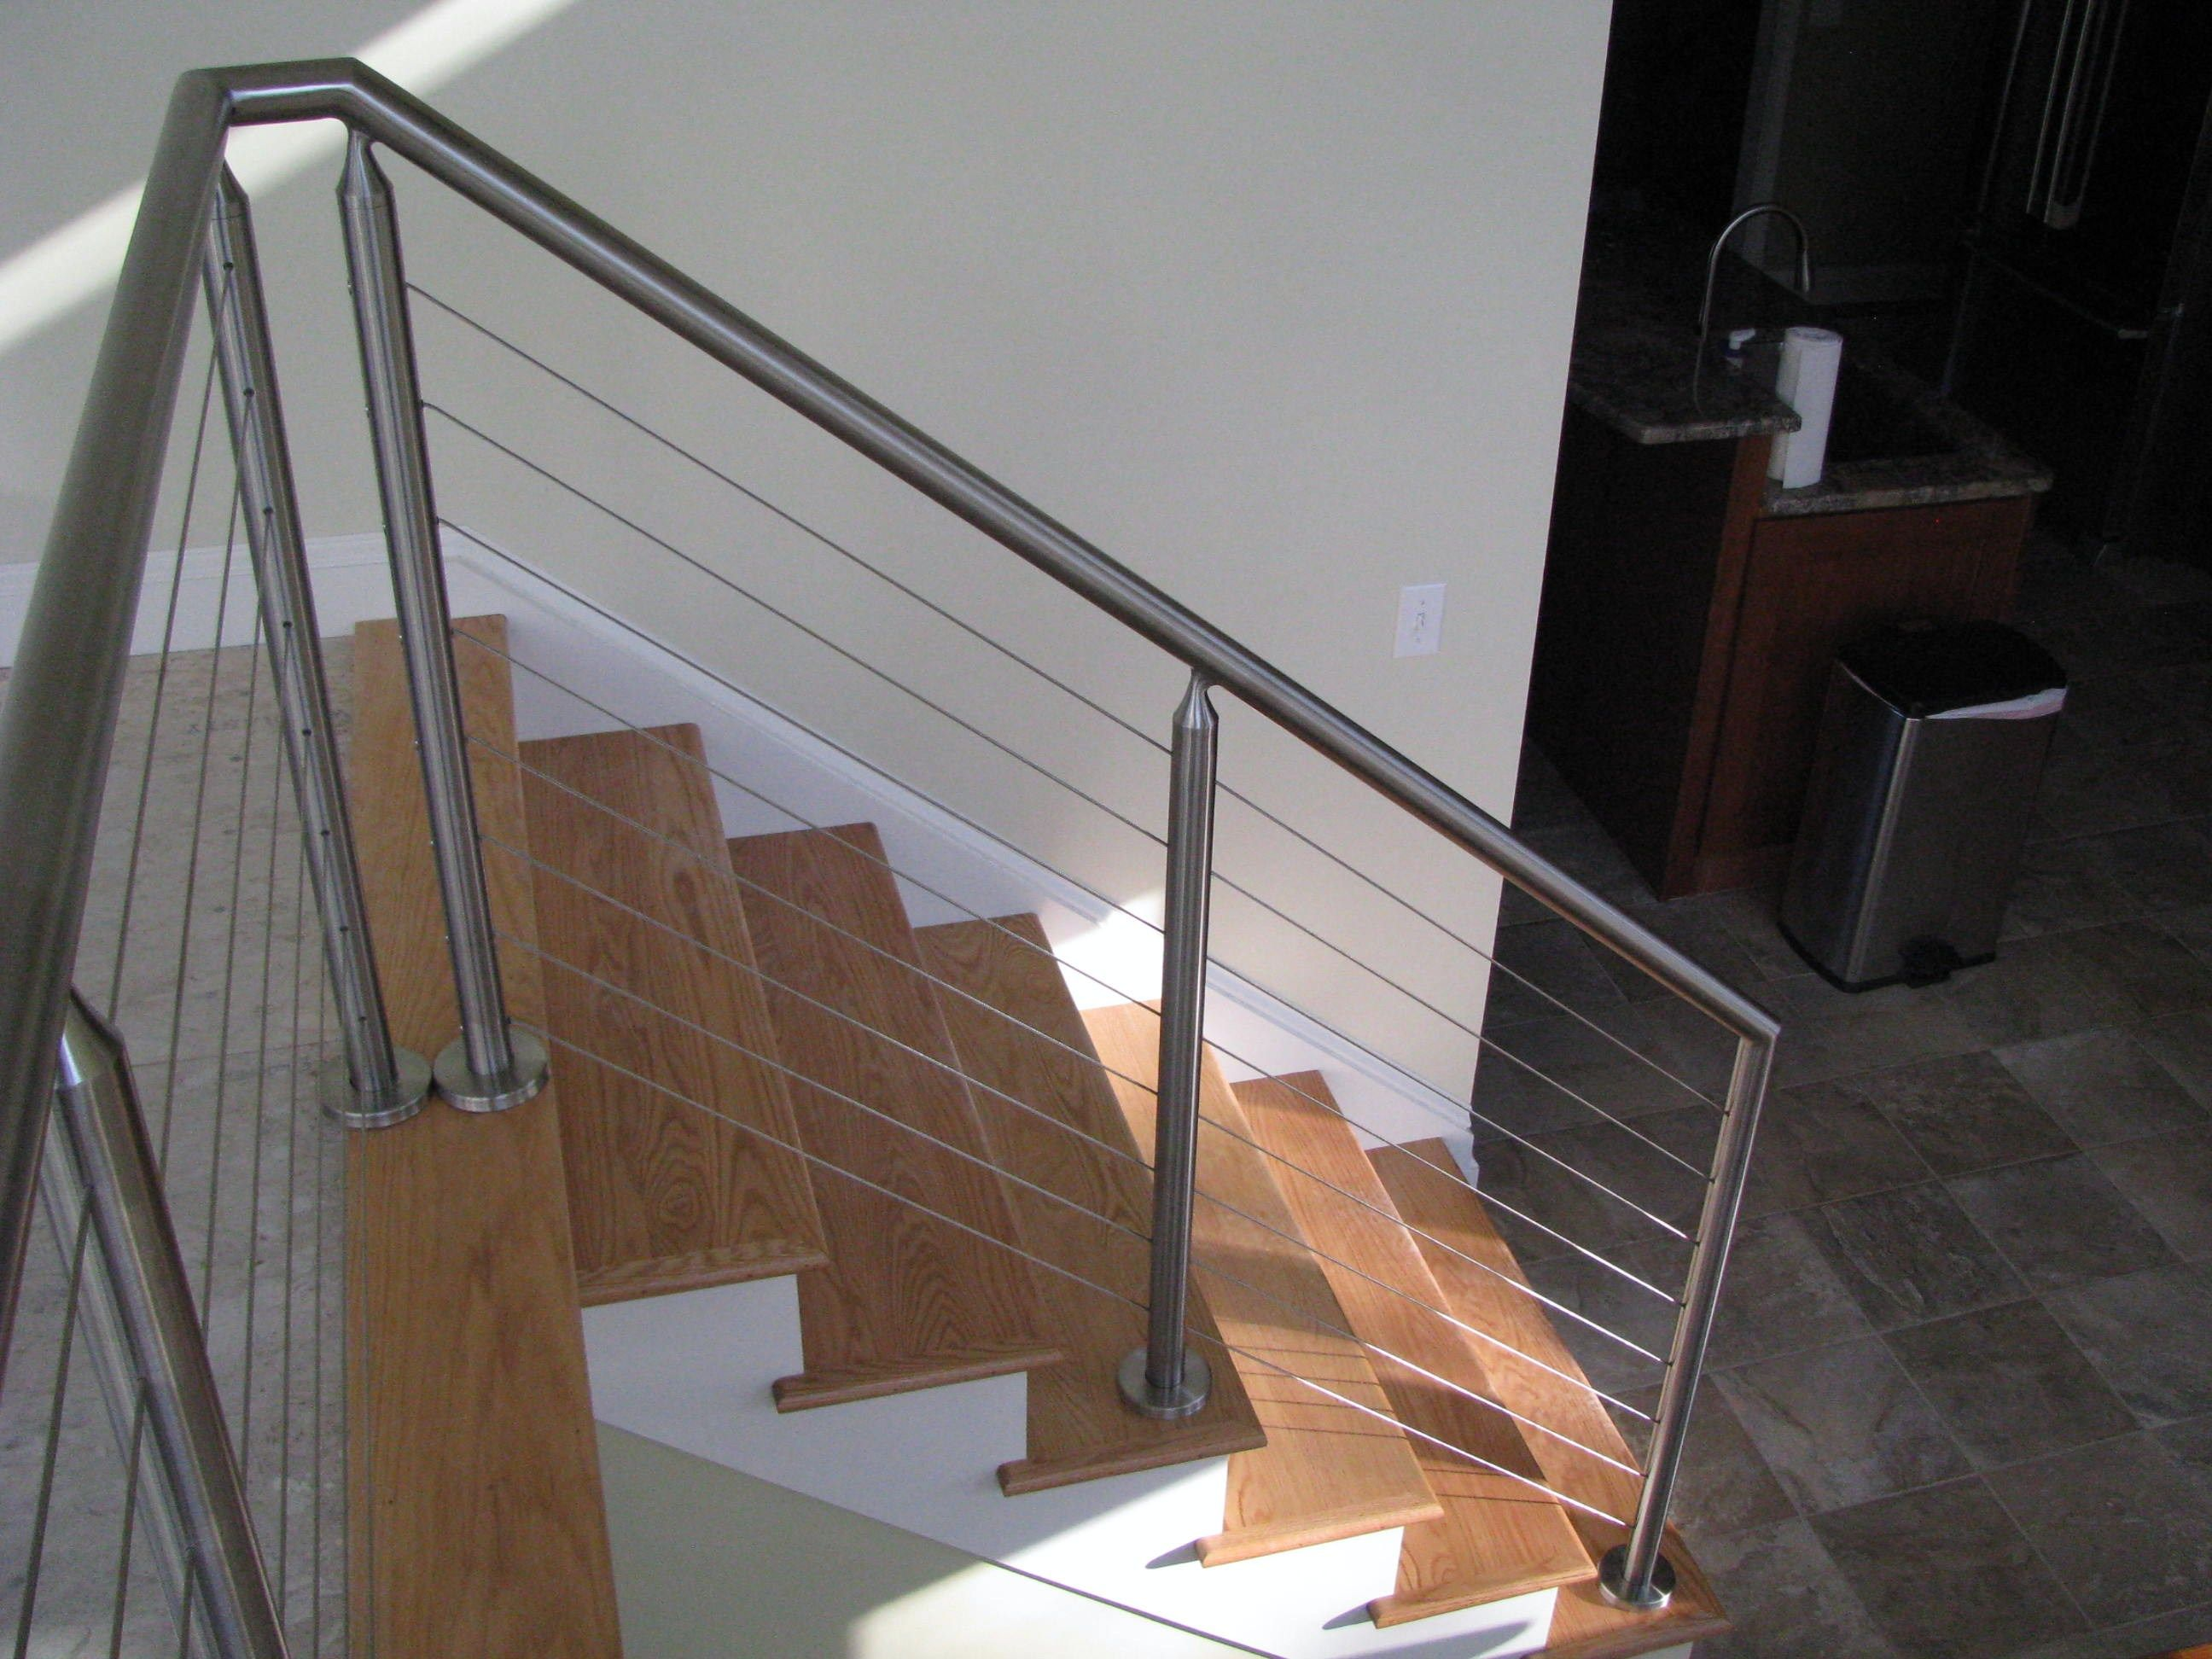 Stainless steel cable railings made with round pipe the railing connections are welded and polished